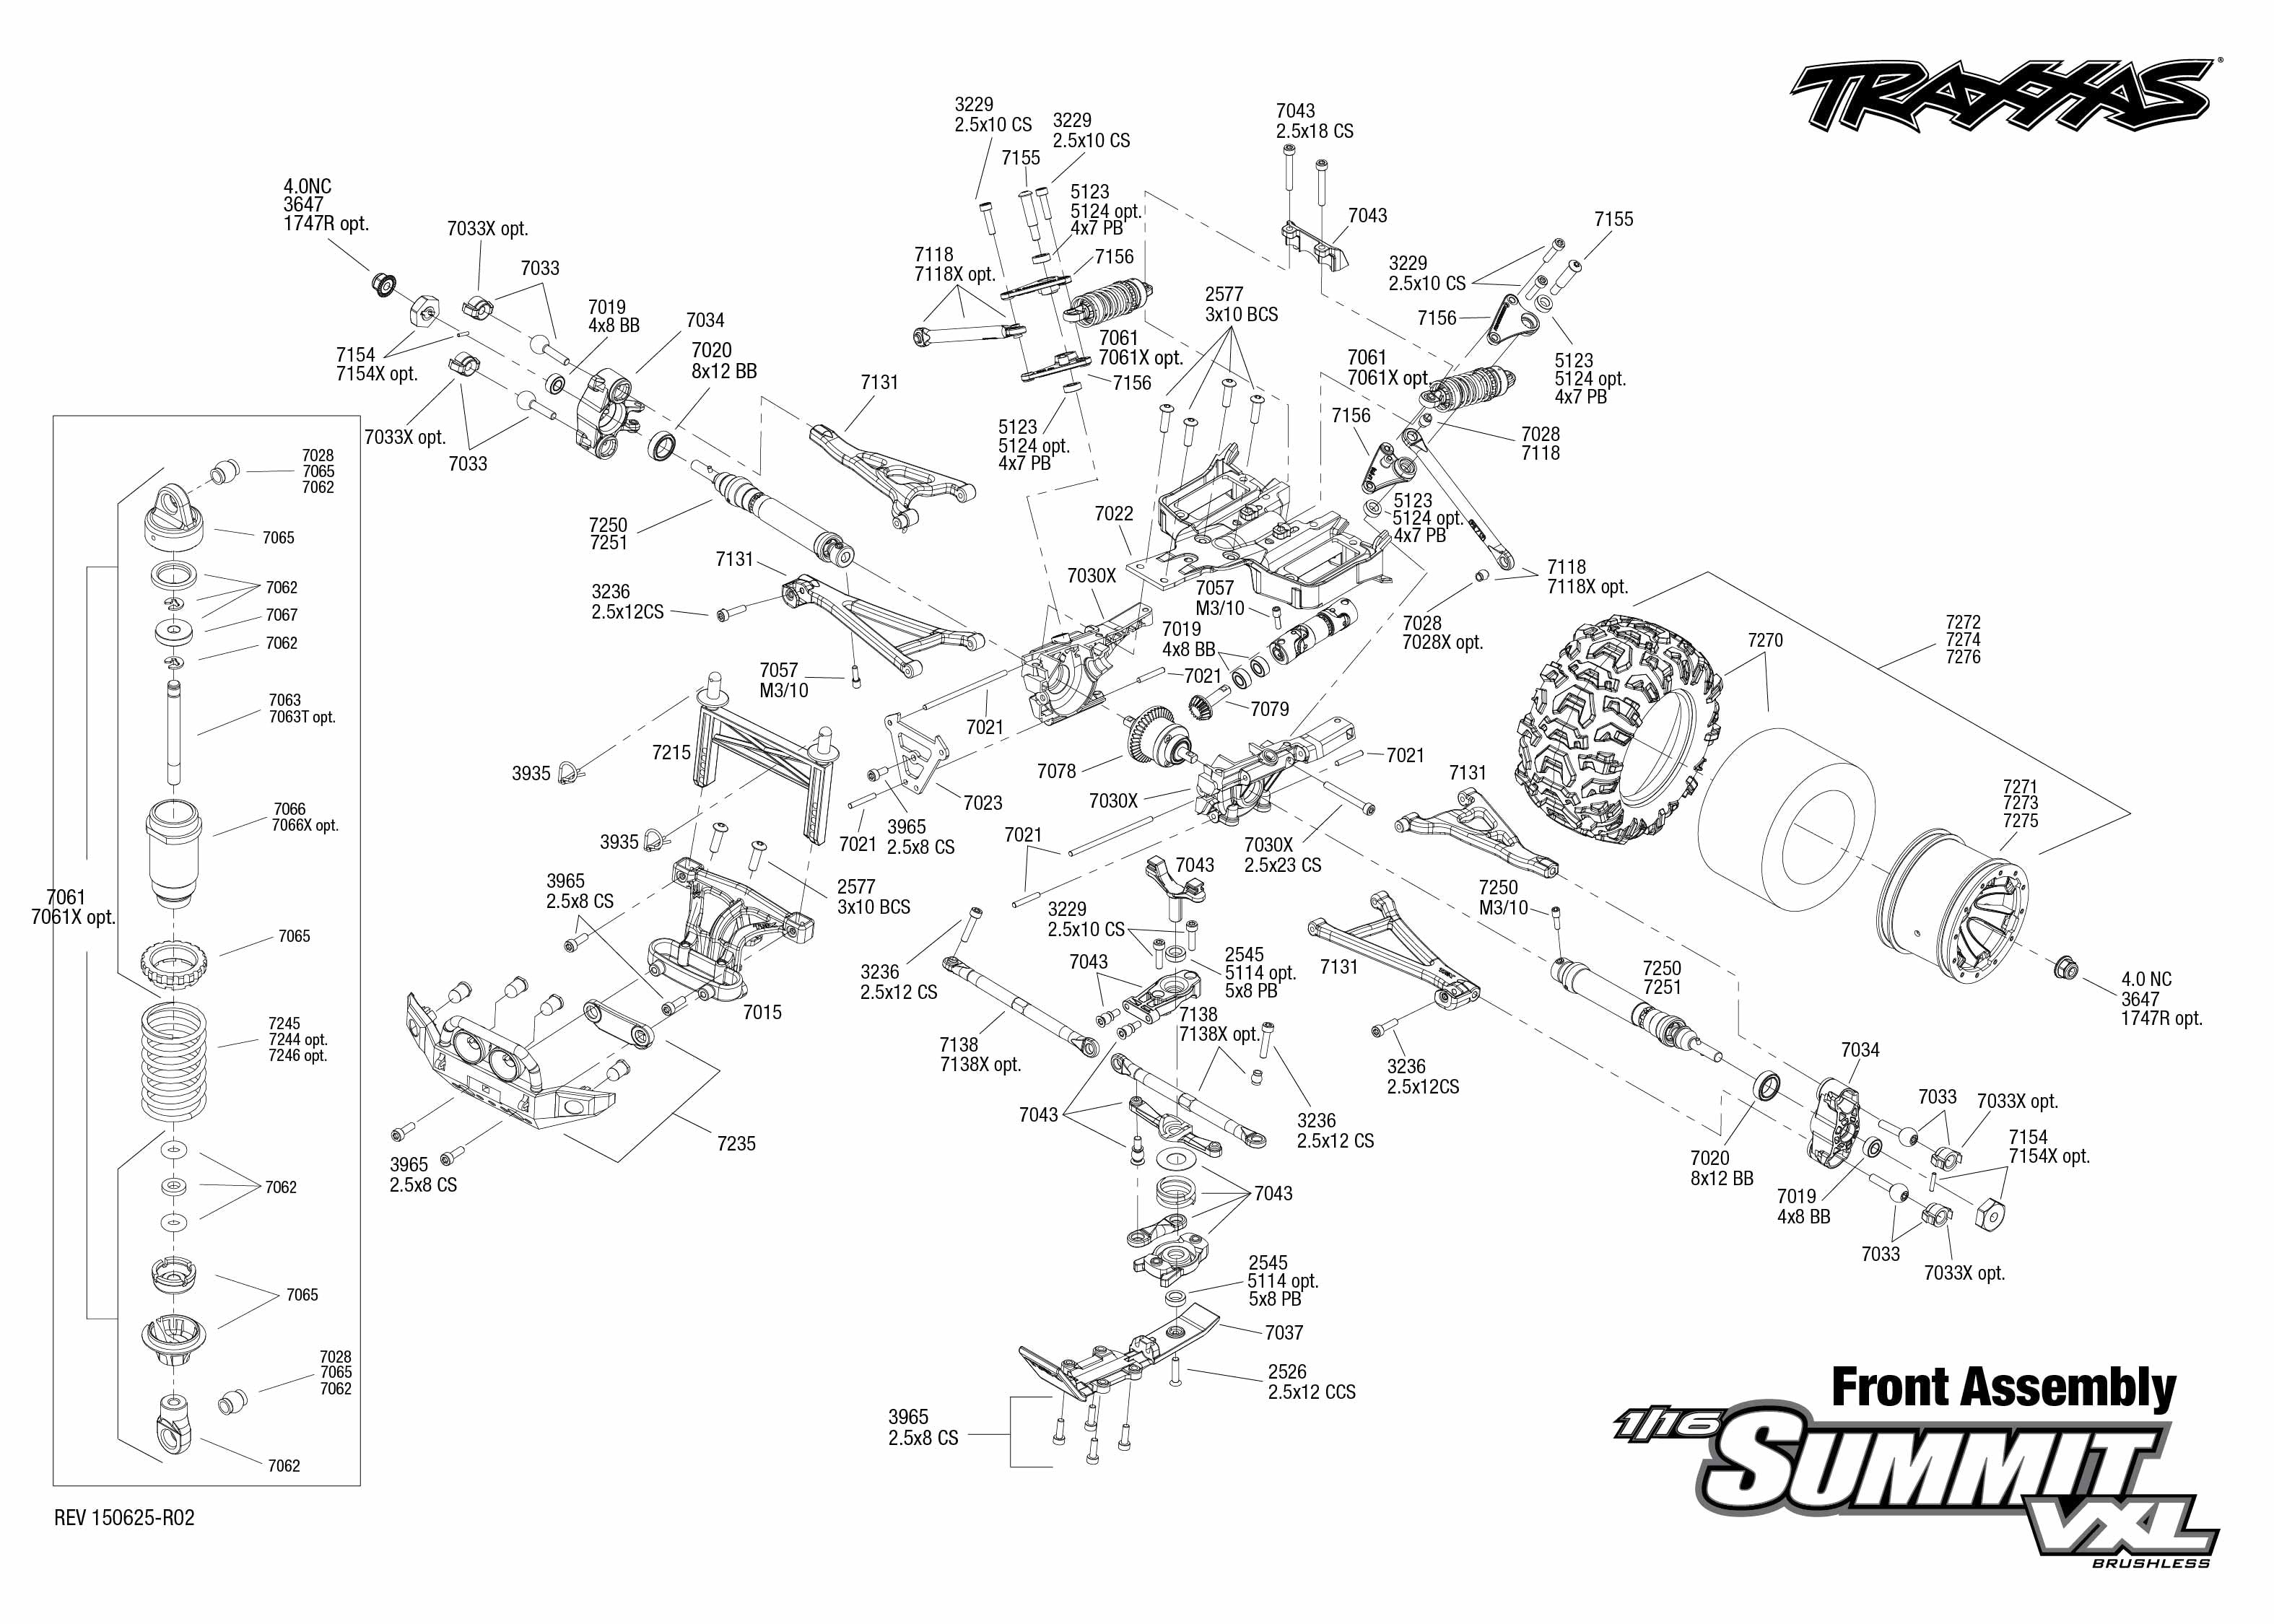 Traxxas Summit Diagram Electrical Wiring Stampede Vxl Parts Monster Jam Replicas 3602 Exploded View 1 16 Front Part Astra Rh Astramodel Cz Receiver Diff